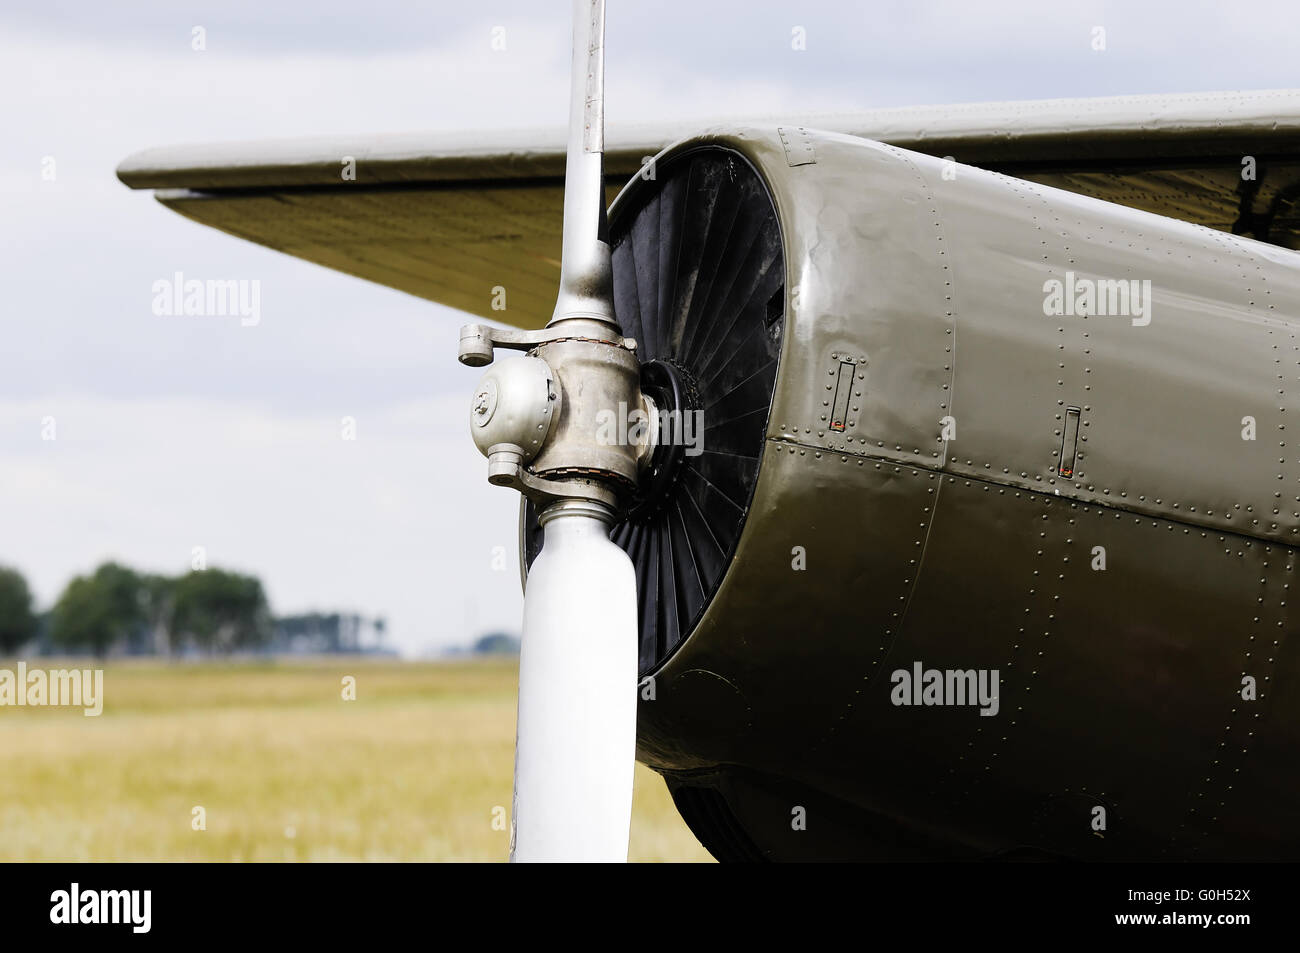 Private propeller-driven airplane over blurry background - Stock Image